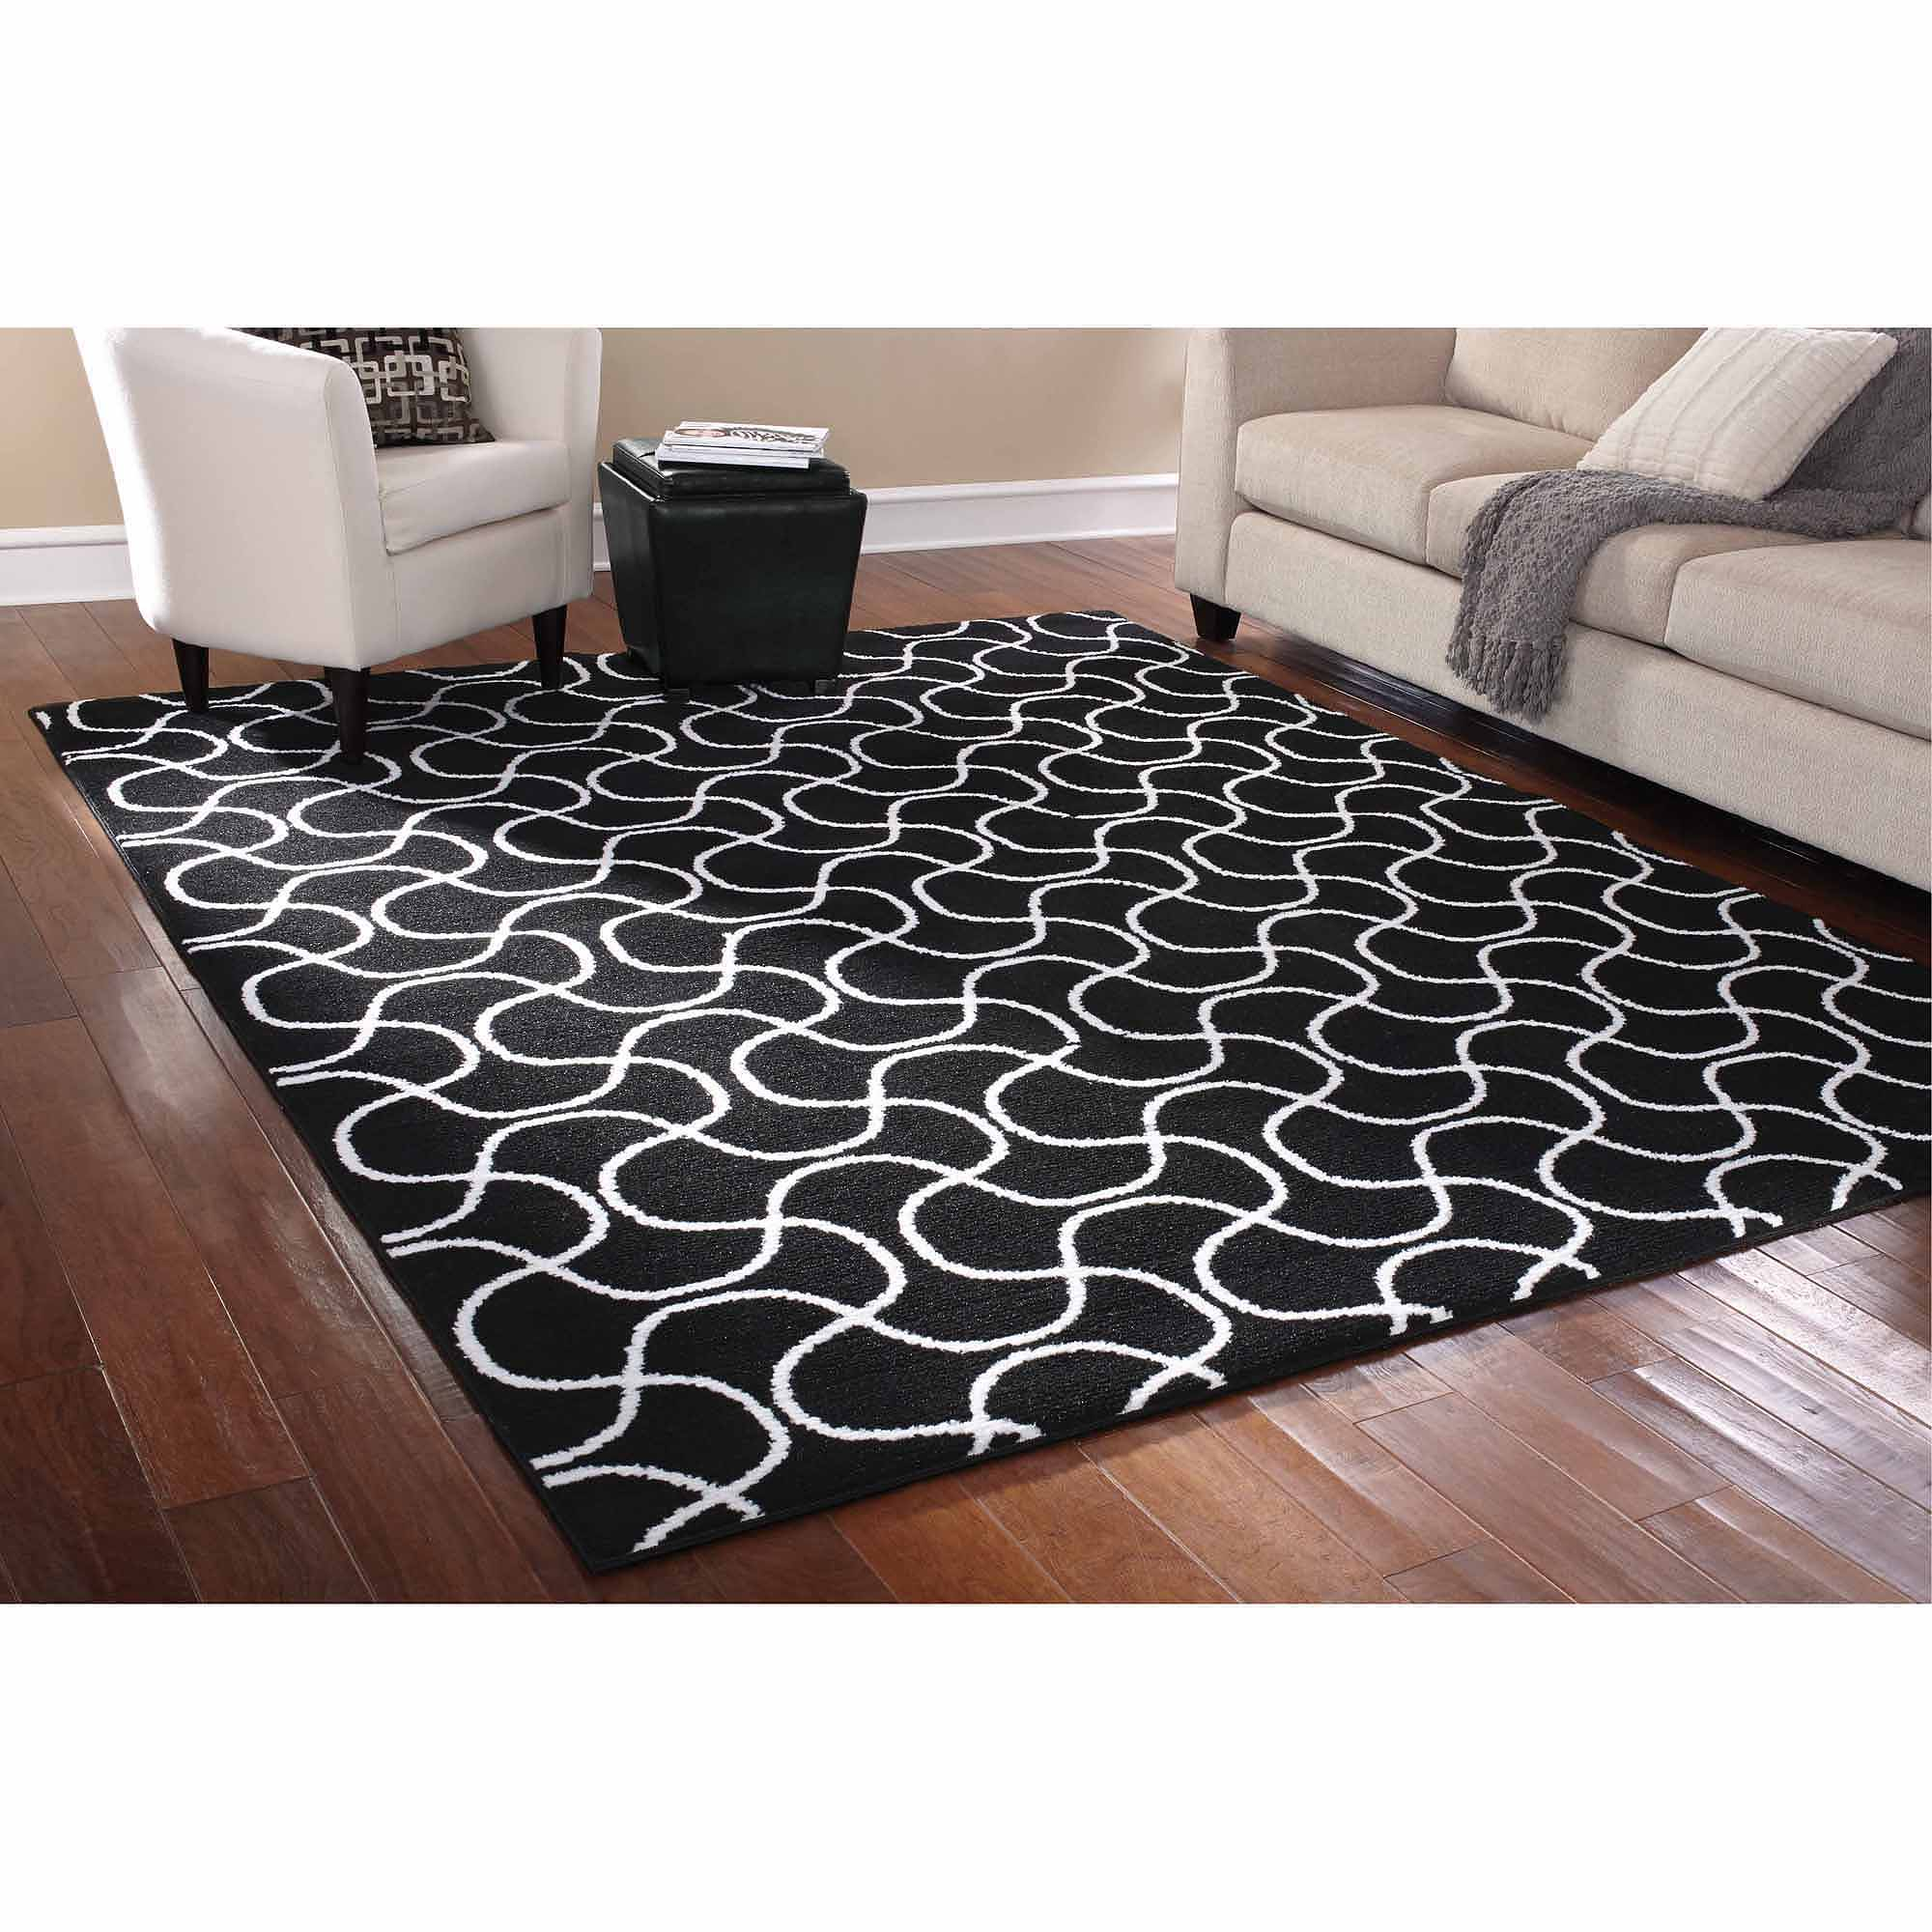 Mainstays Rug in a Bag Drizzle Area Rug, Black White by Generic